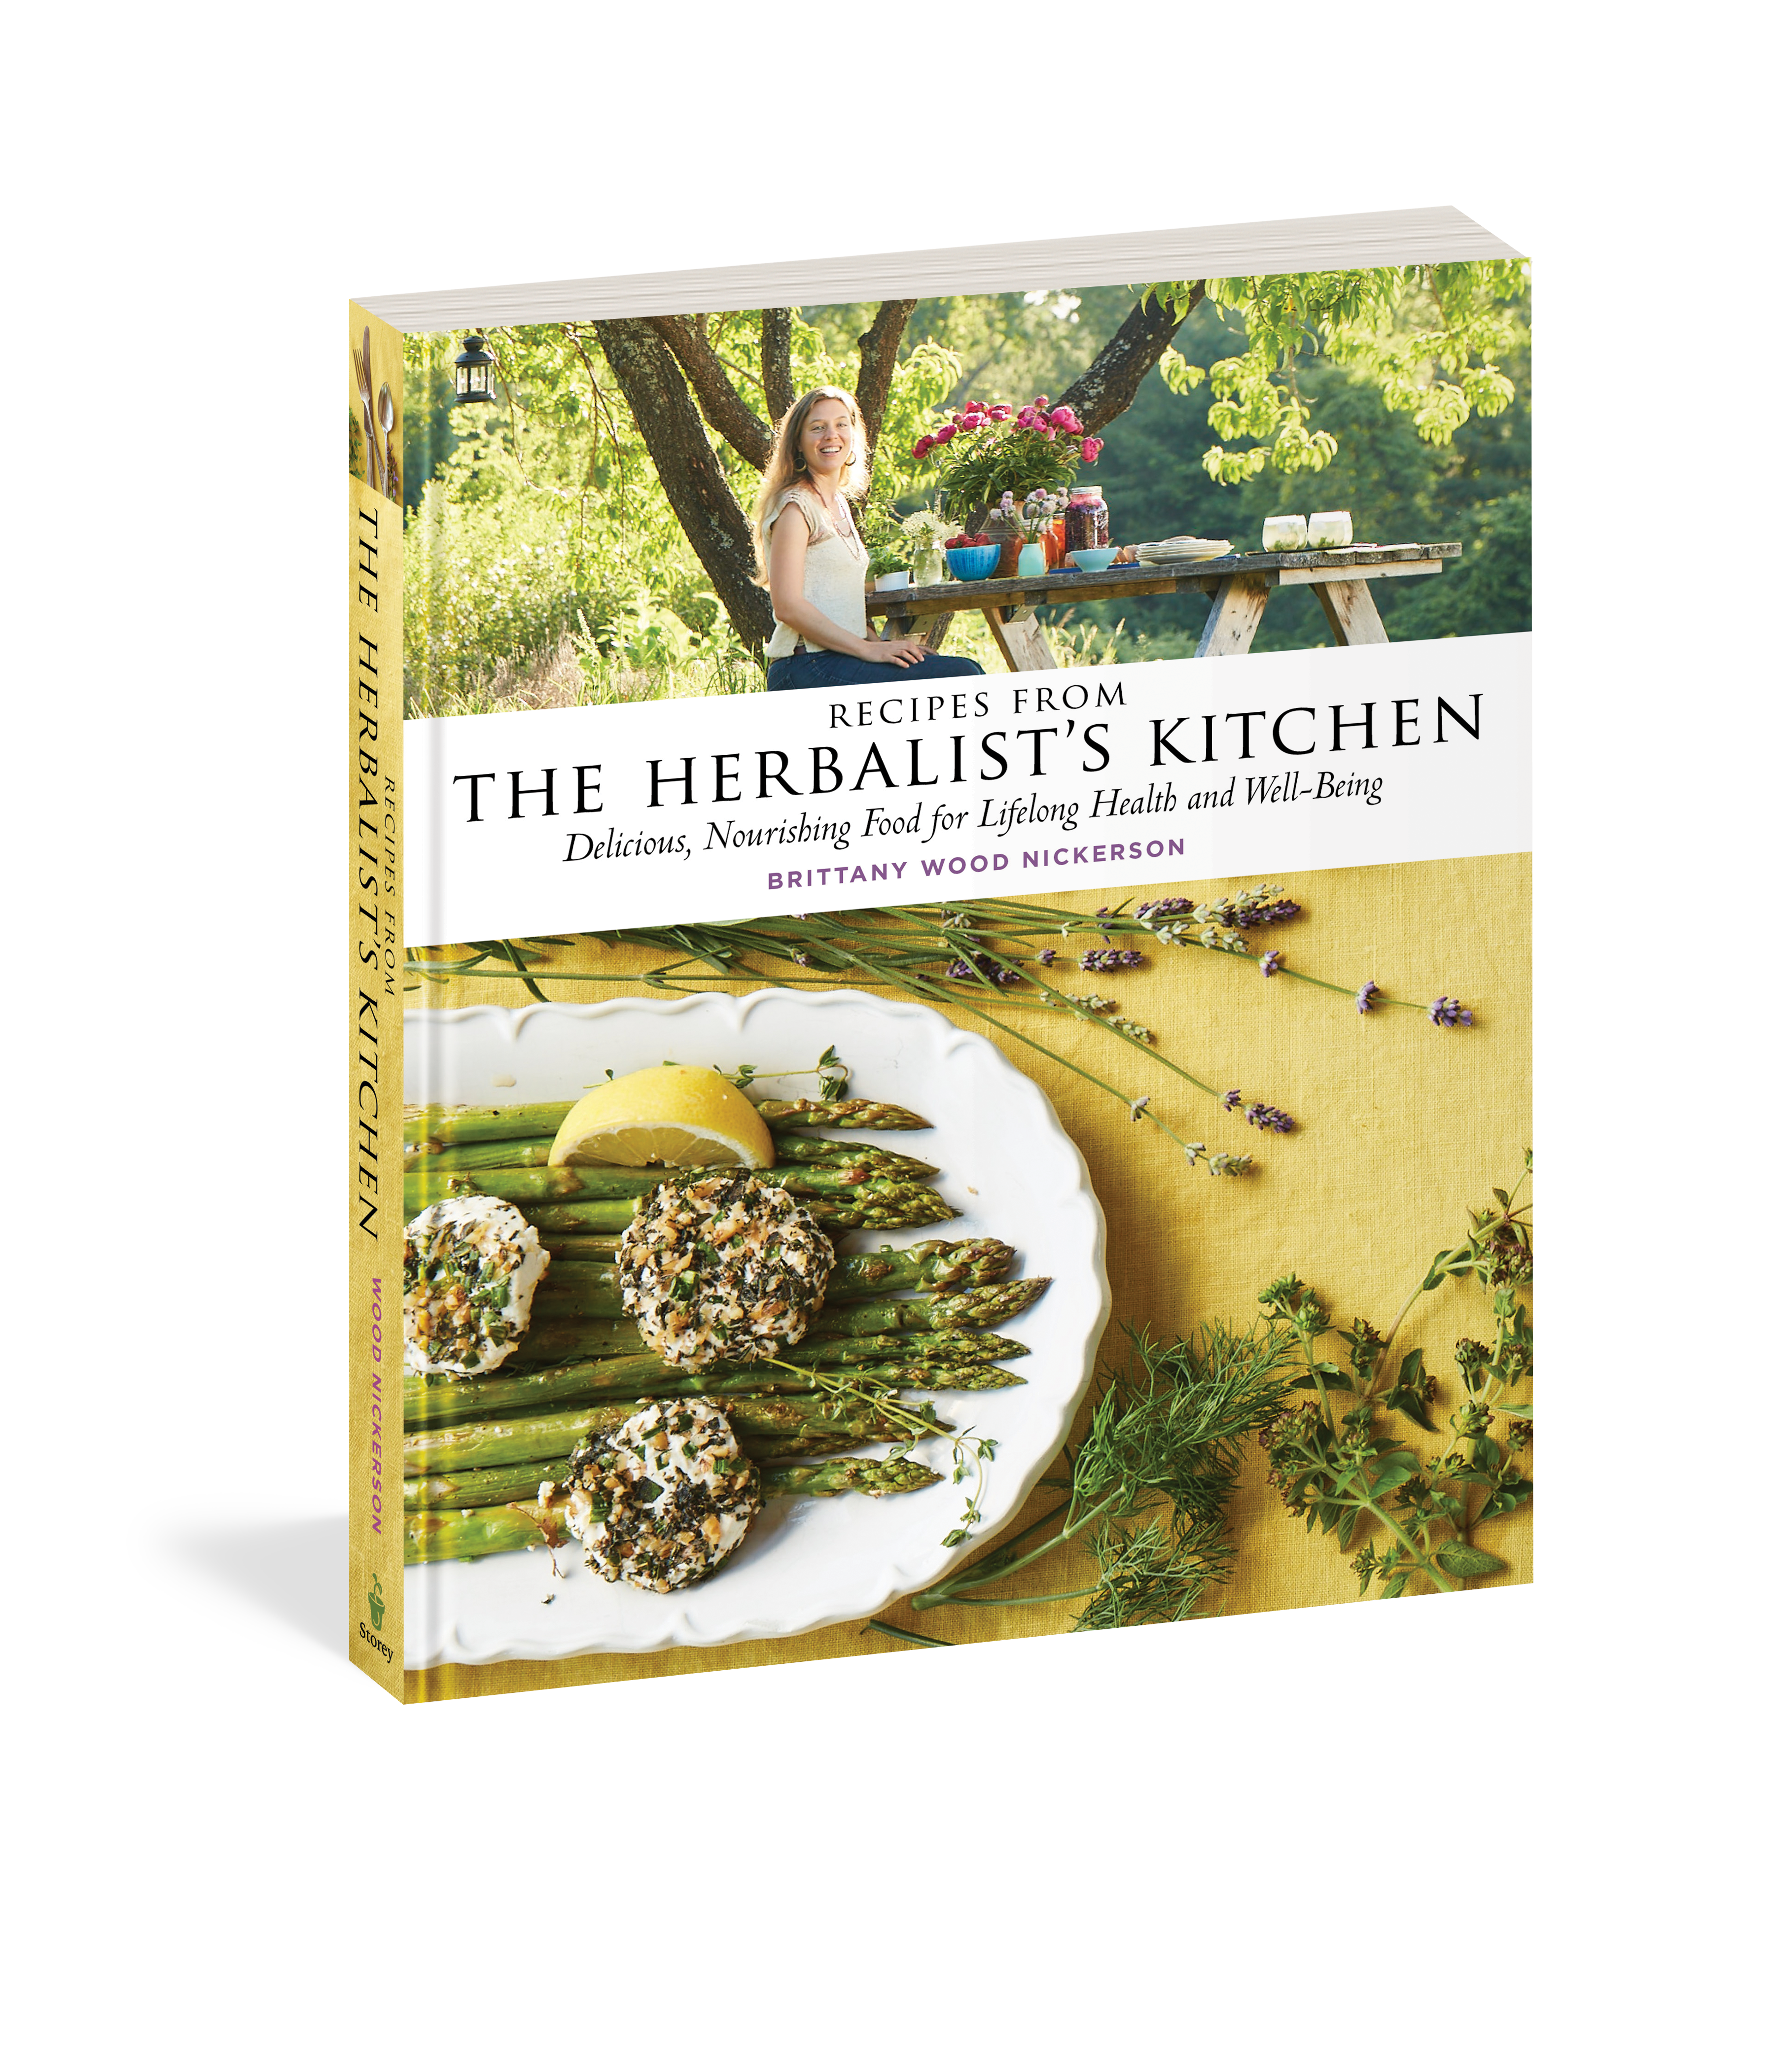 Recipes from the Herbalist's Kitchen, Herbalist's Kitchen, Herbal Cooking, Kitchen Medicine, Cooking with herbs, plant medicine, herbs, herbalism, Brittany Nickerson, Brittany Wood Nickerson, Storey, Storey Publishing, seasonal eating, Western Mass, Massachusetts, Workman, Northampton, Amherst, Boston